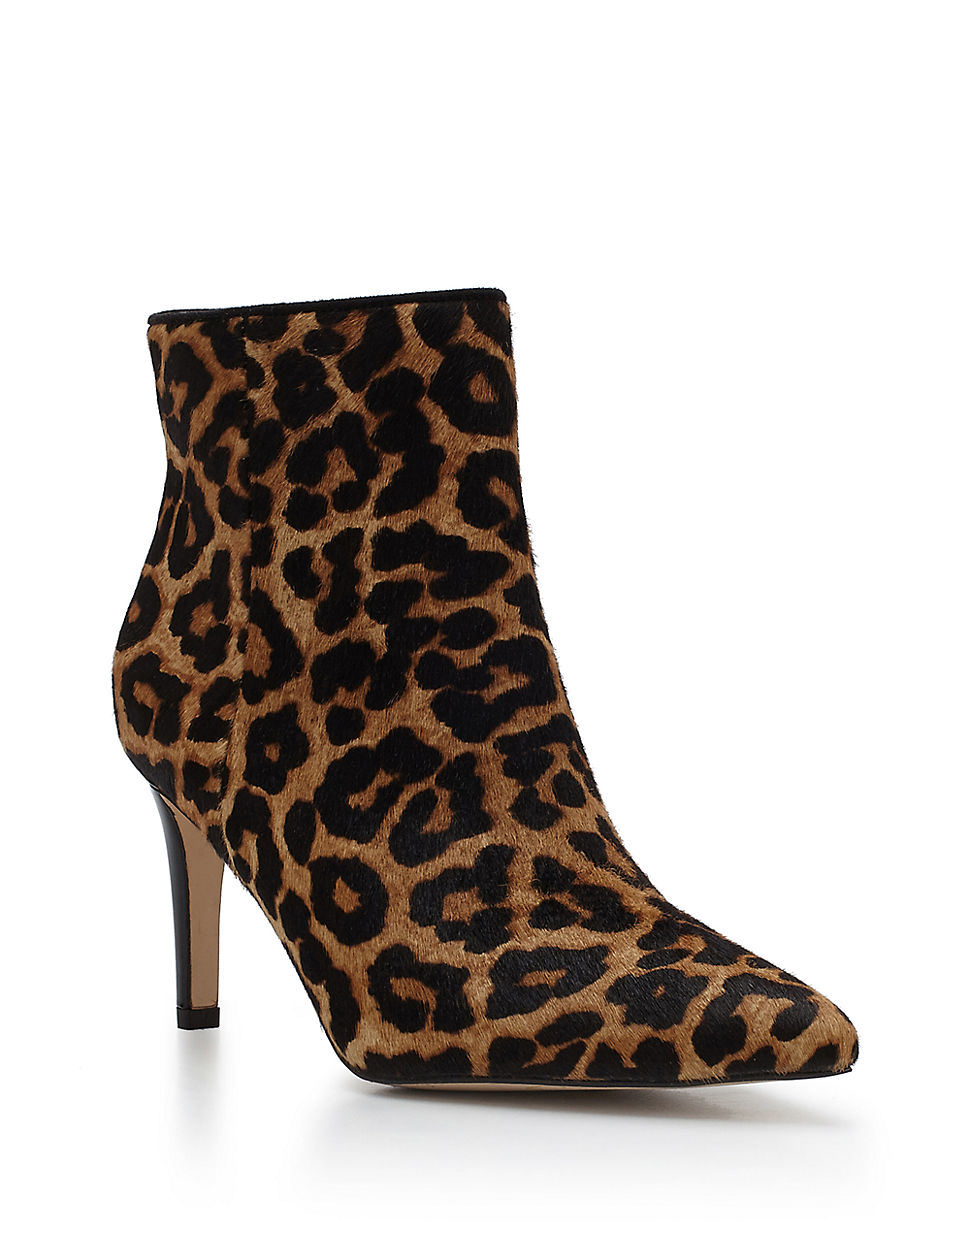 Gyoume Women Ankle Short Boots Shoes Leopard Print Boots Ladies Martin Boots Shoes Zipper Boot Shoes. by Gyoume. $ - $ $ 11 $ 18 Save 8% with coupon. Product Features Summer Flip Flops shoes boots shoes sandals boots Flat boots shoes Annie Shoes Women's Mobile Riding Boot.